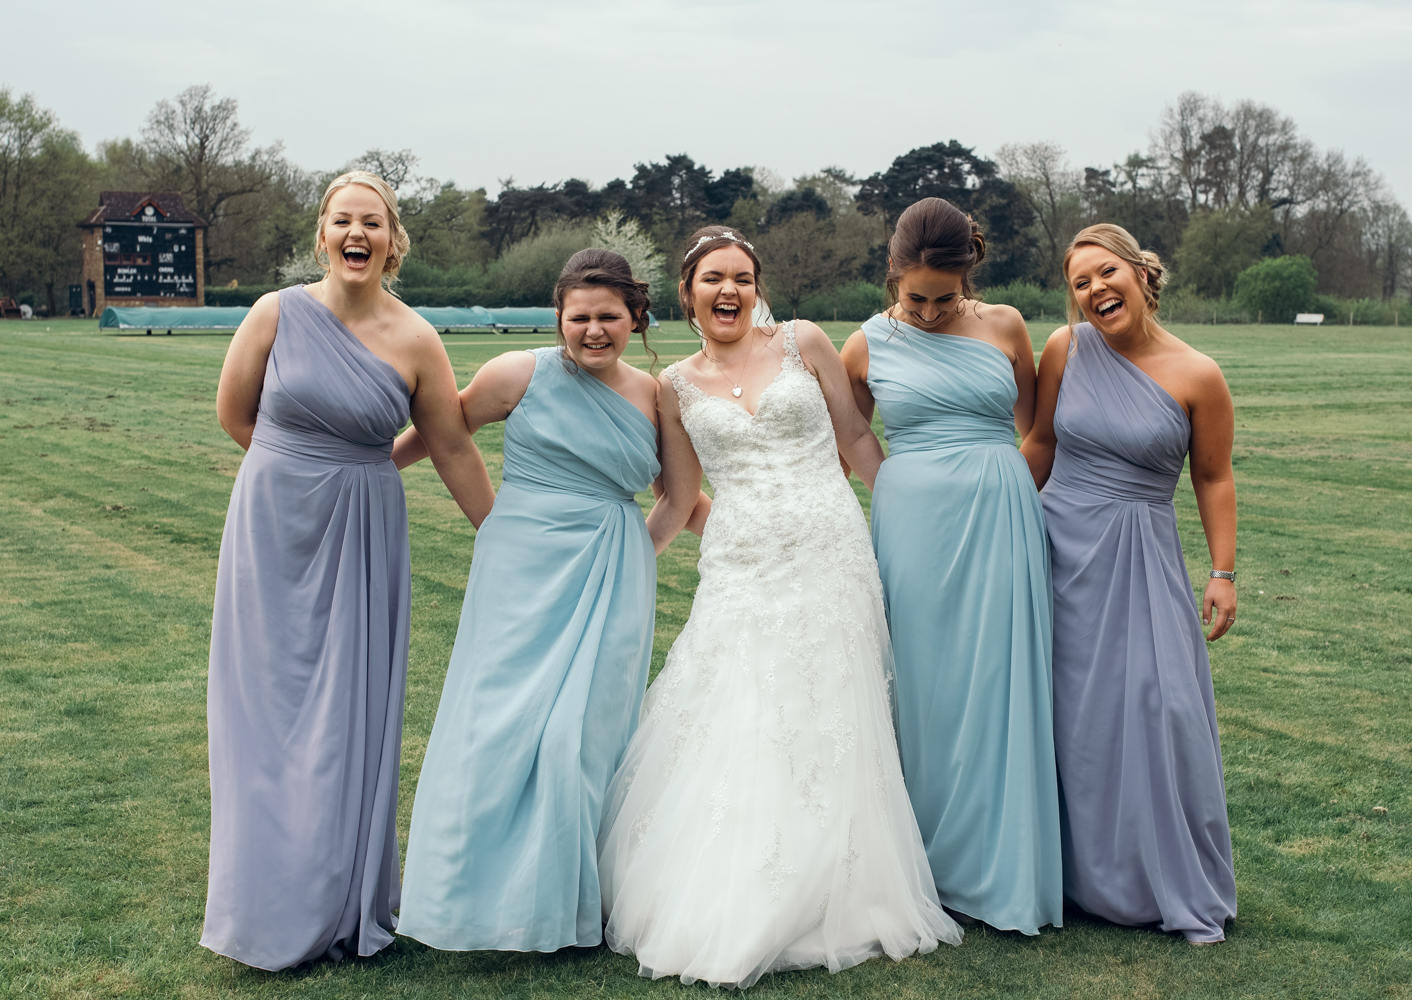 The bride and bridesmaids having a laugh during groups shots